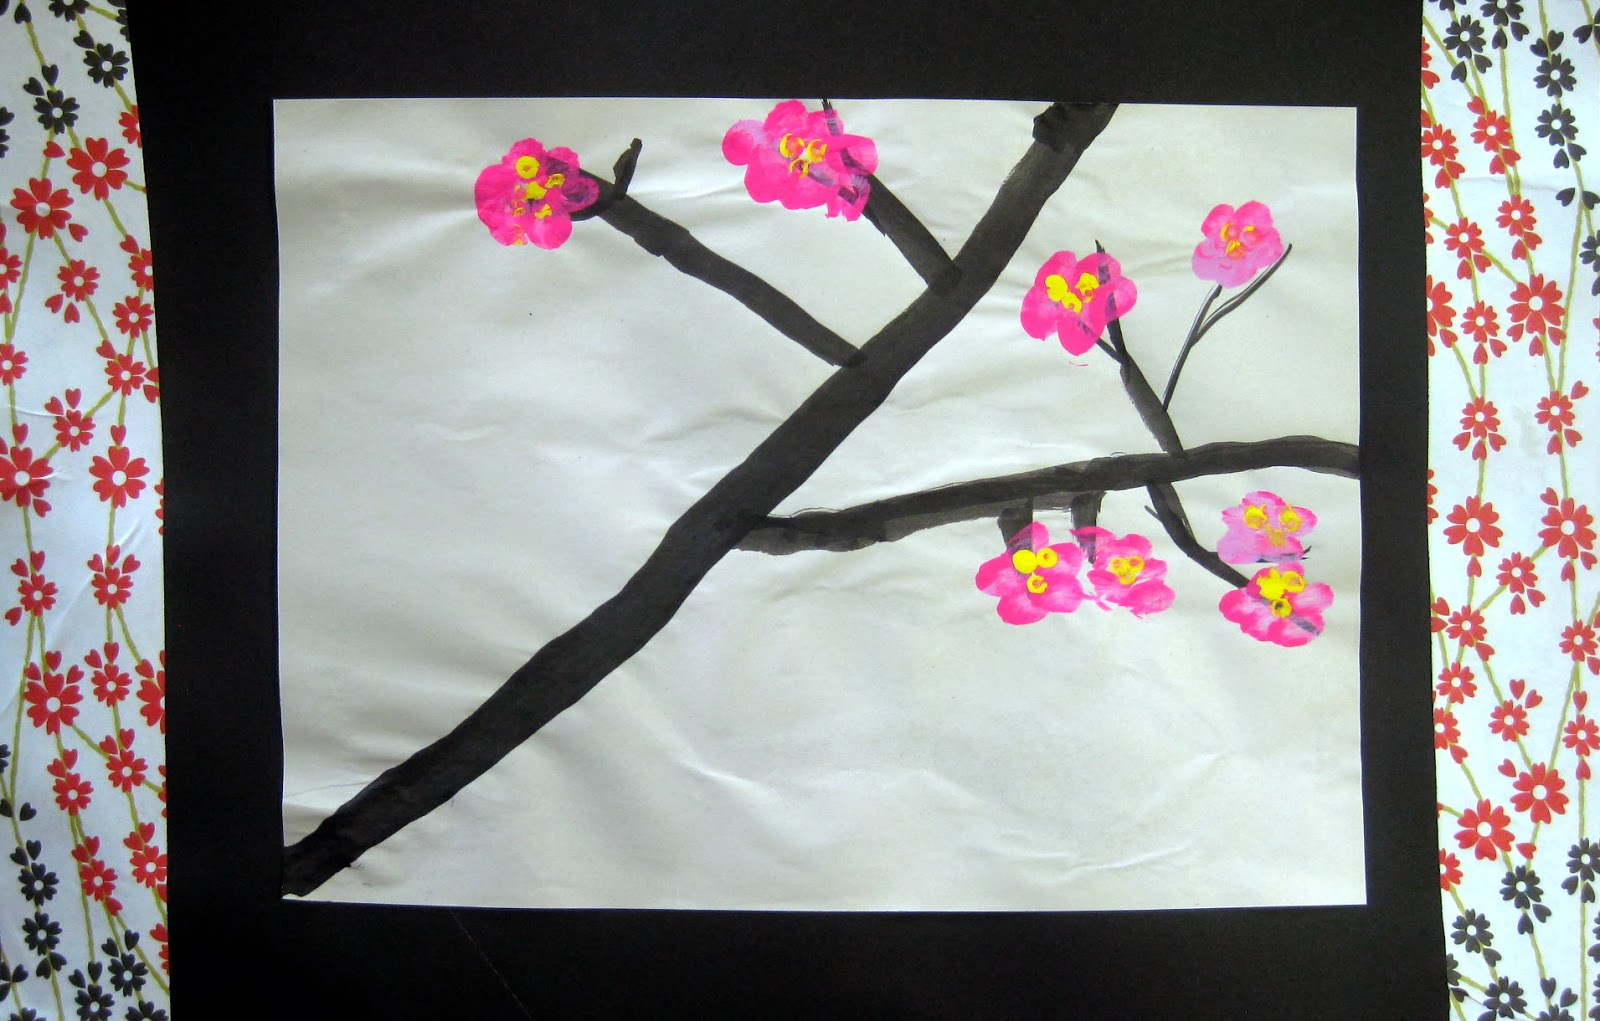 Cassie stephens in the art room cherry blossom trees by for Cherry blossom mural works